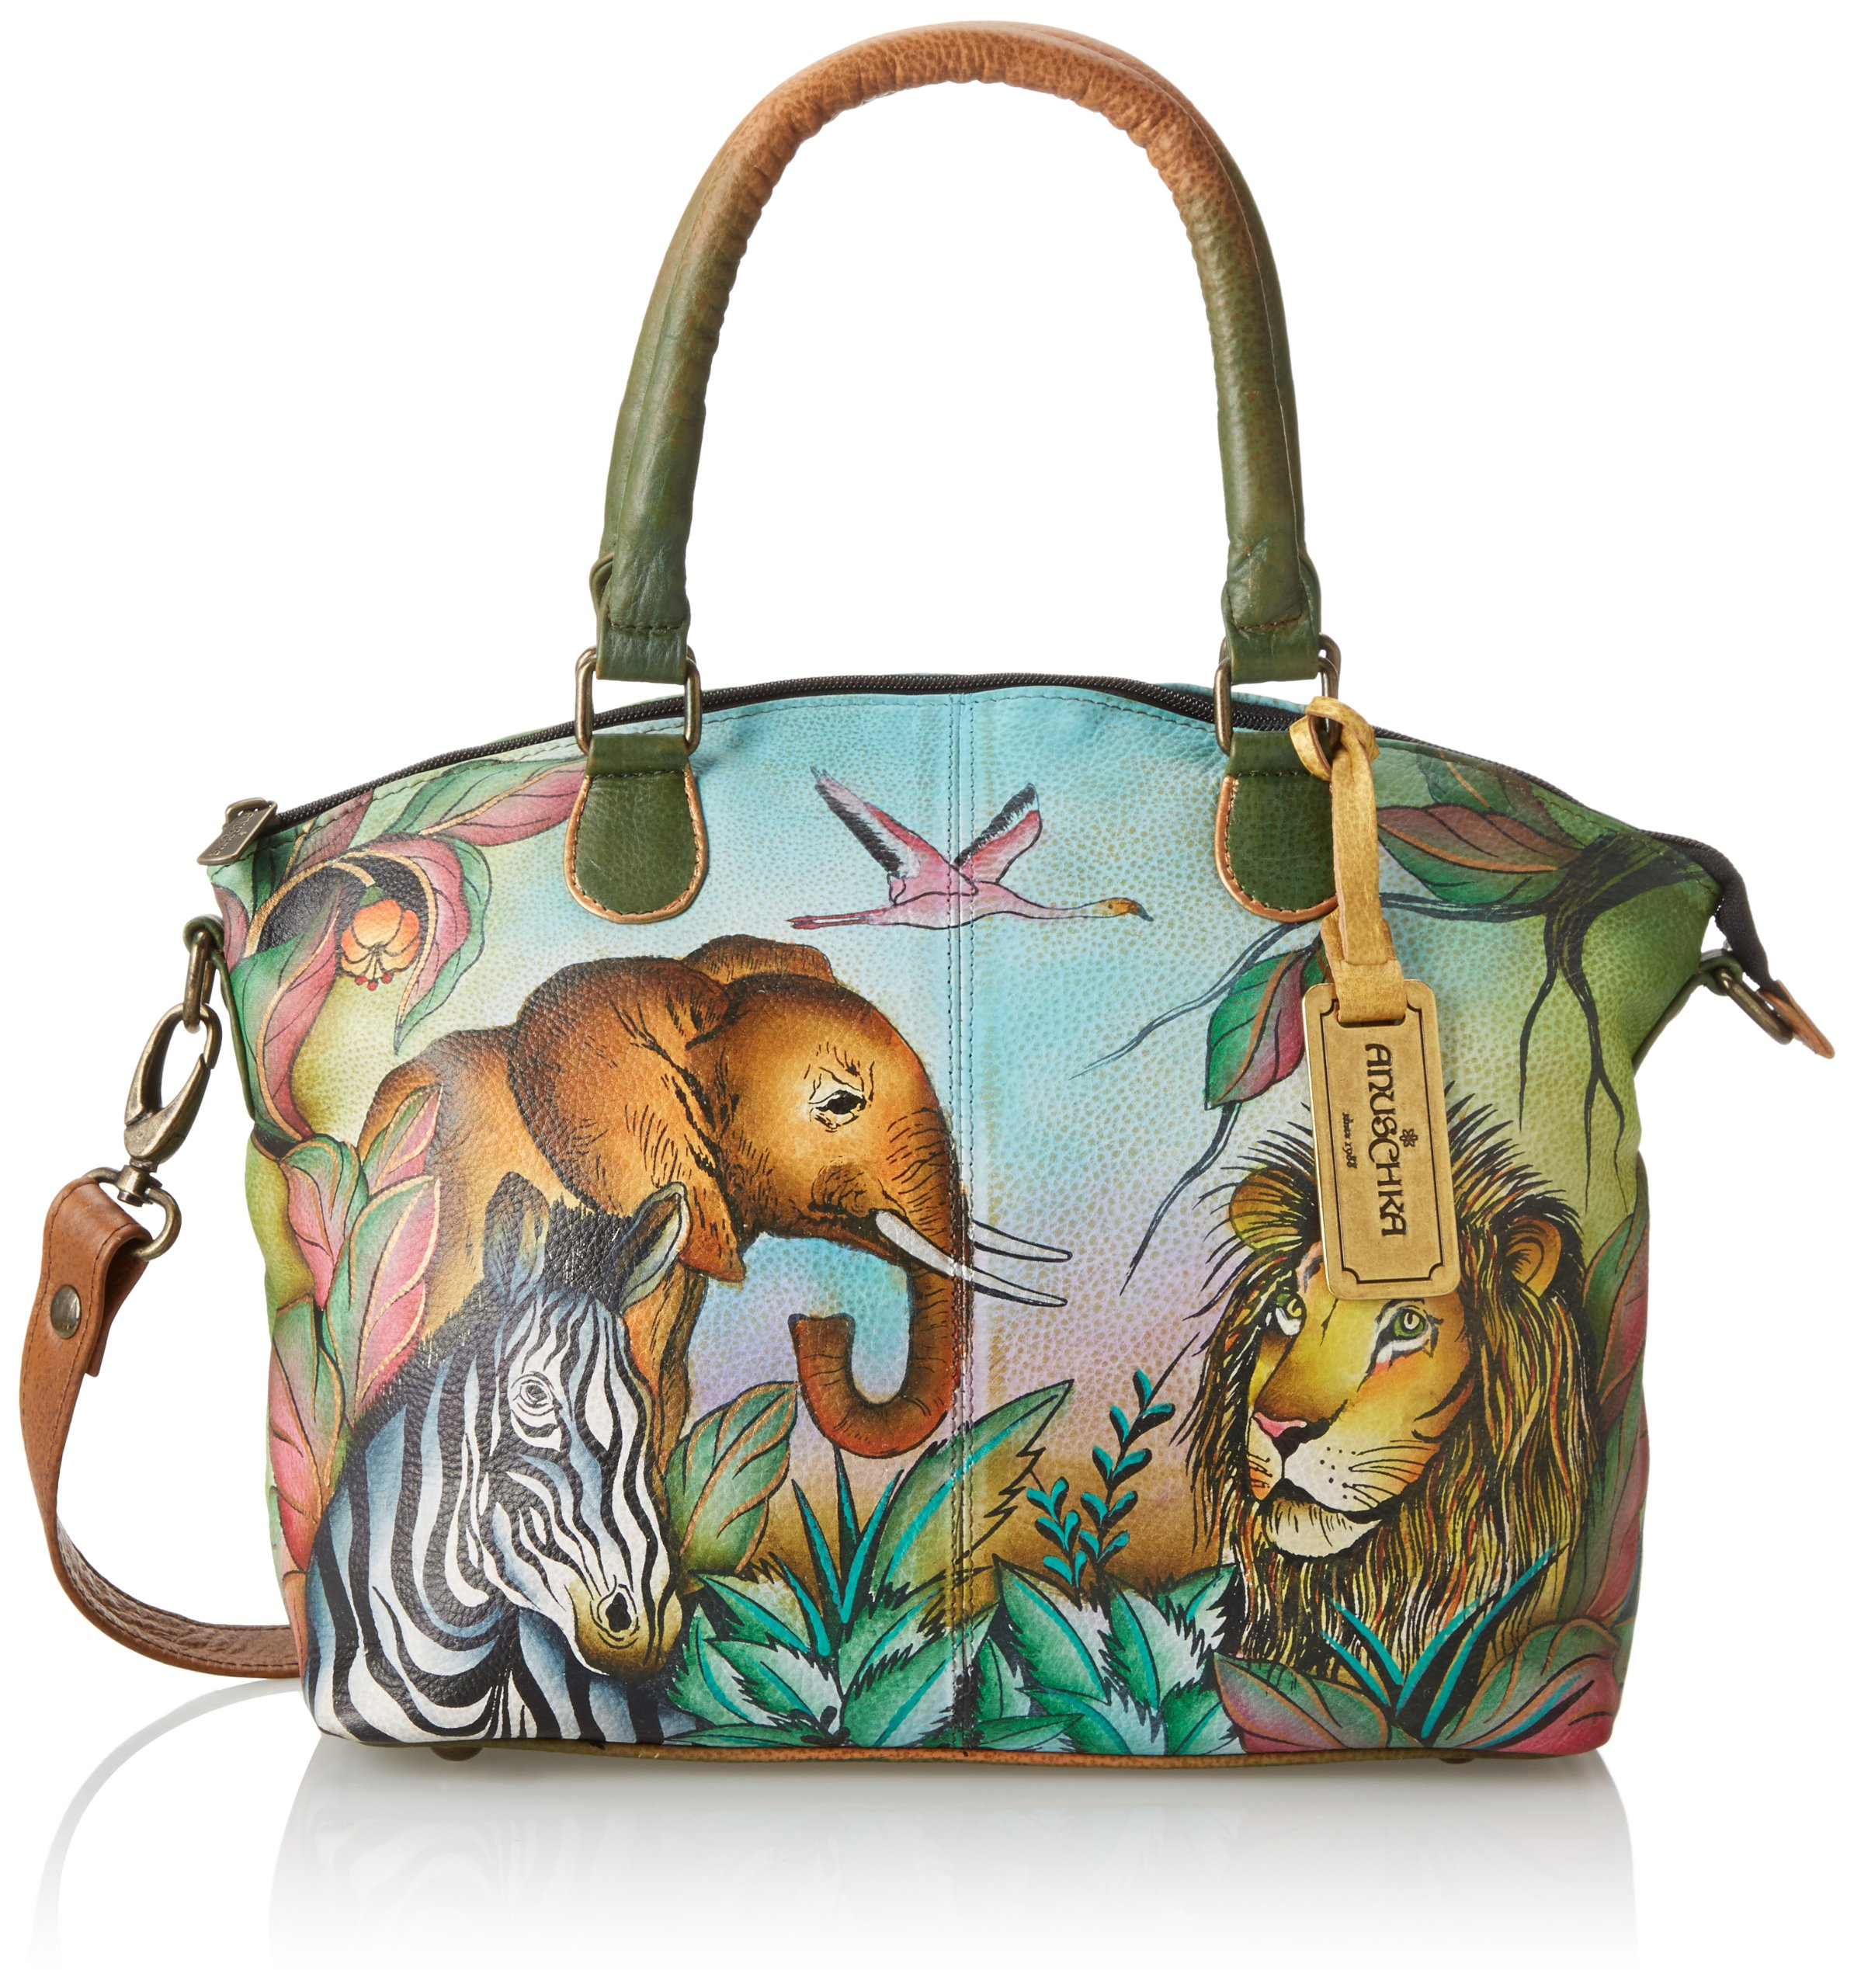 Anuschka Hand-Painted Leather Medium Convertible Satchel | Top Handle Shoulder Bag/Purse | African Adventure